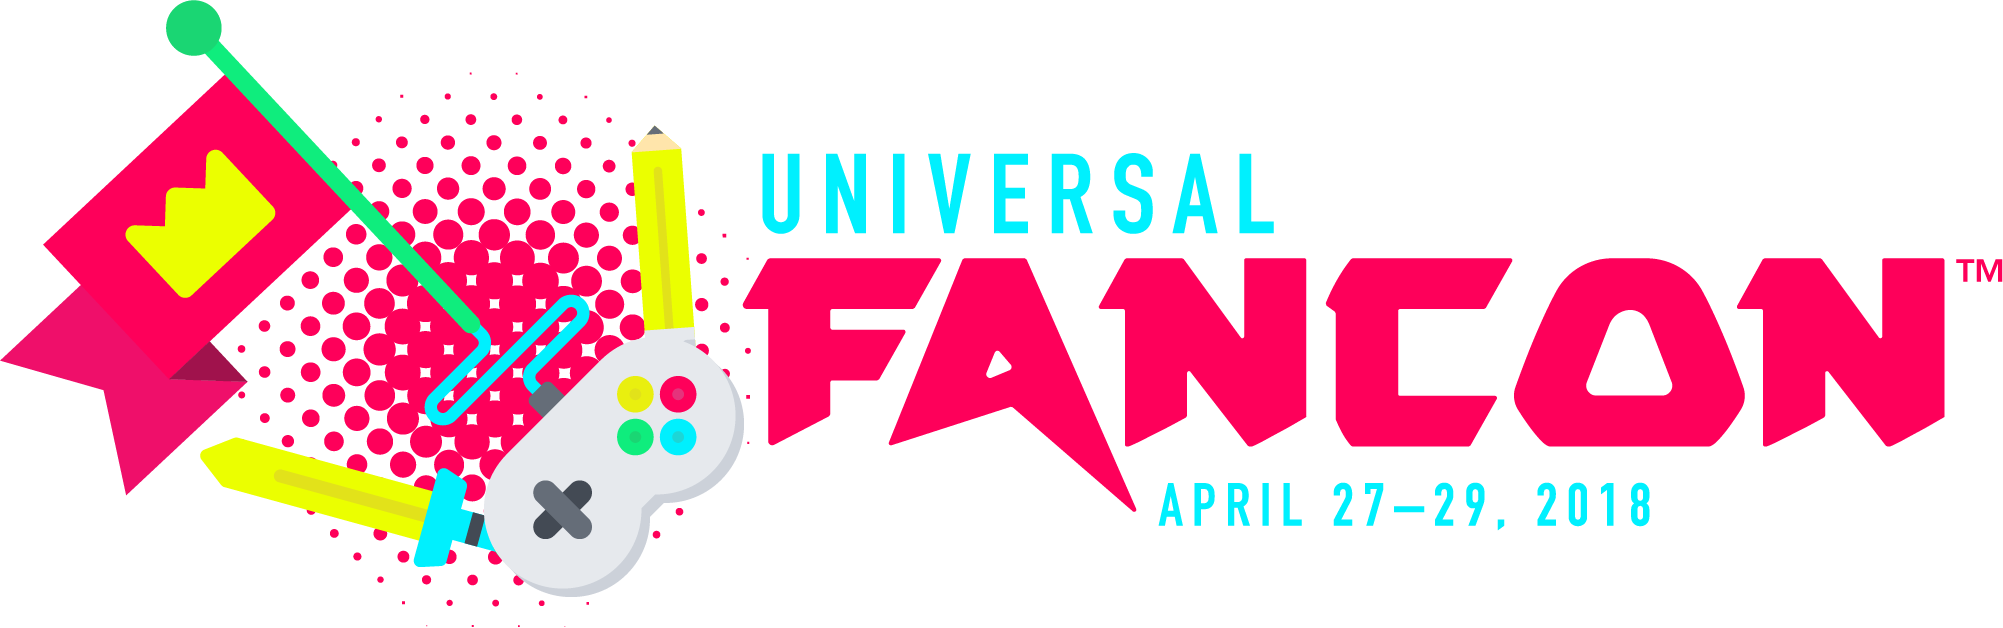 Find tickets from Universal FanCon